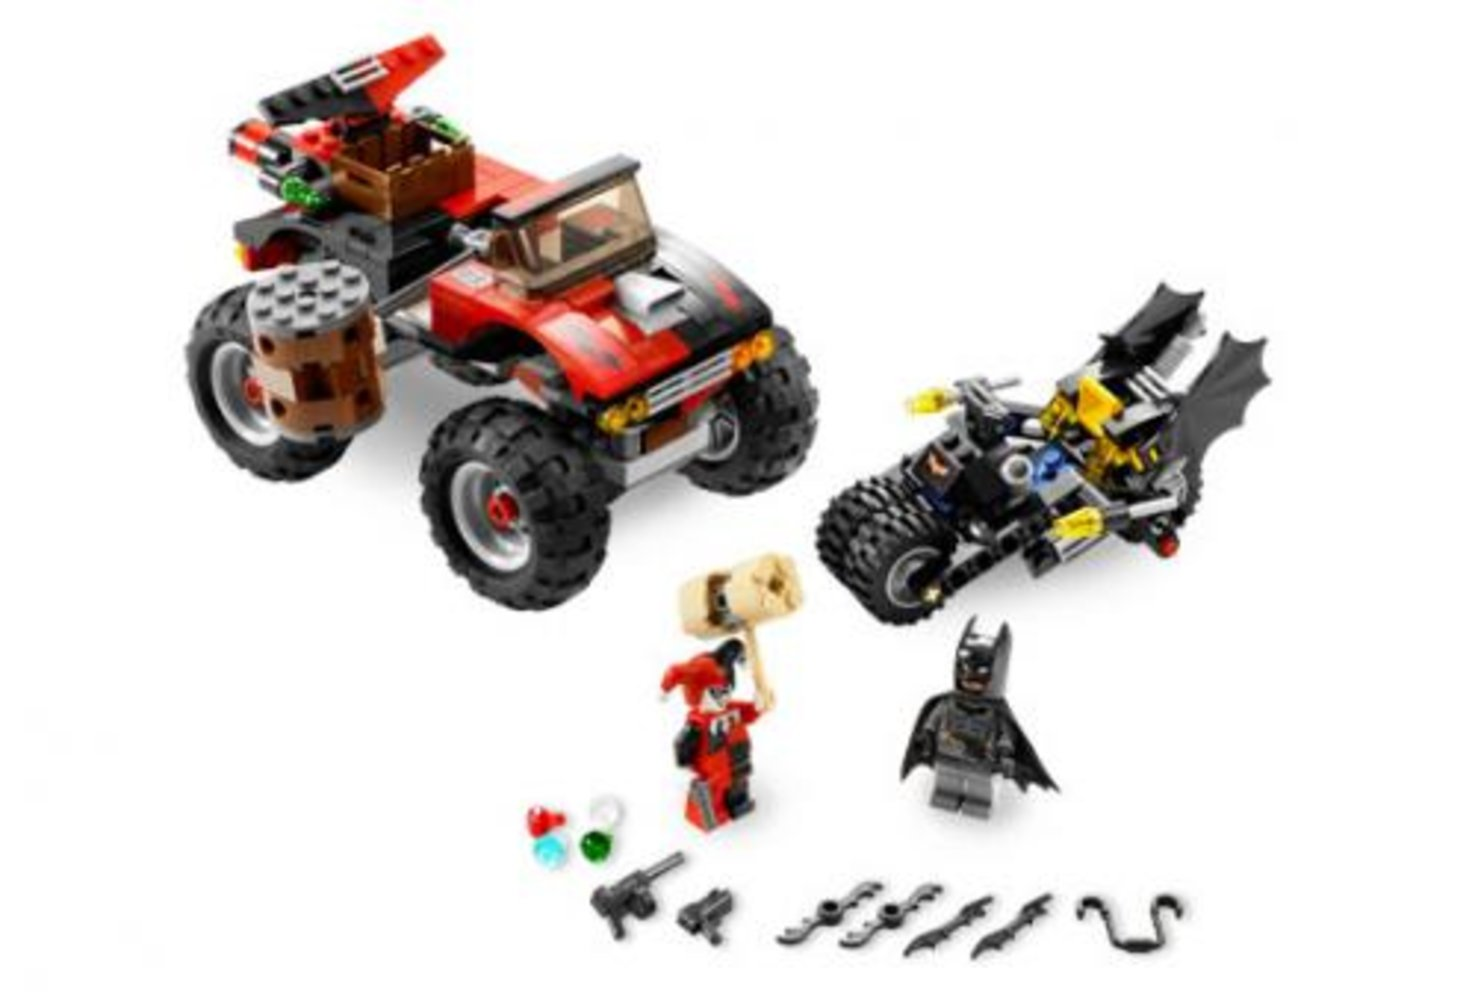 The Batcycle: Harley Quinn's Hammer Truck